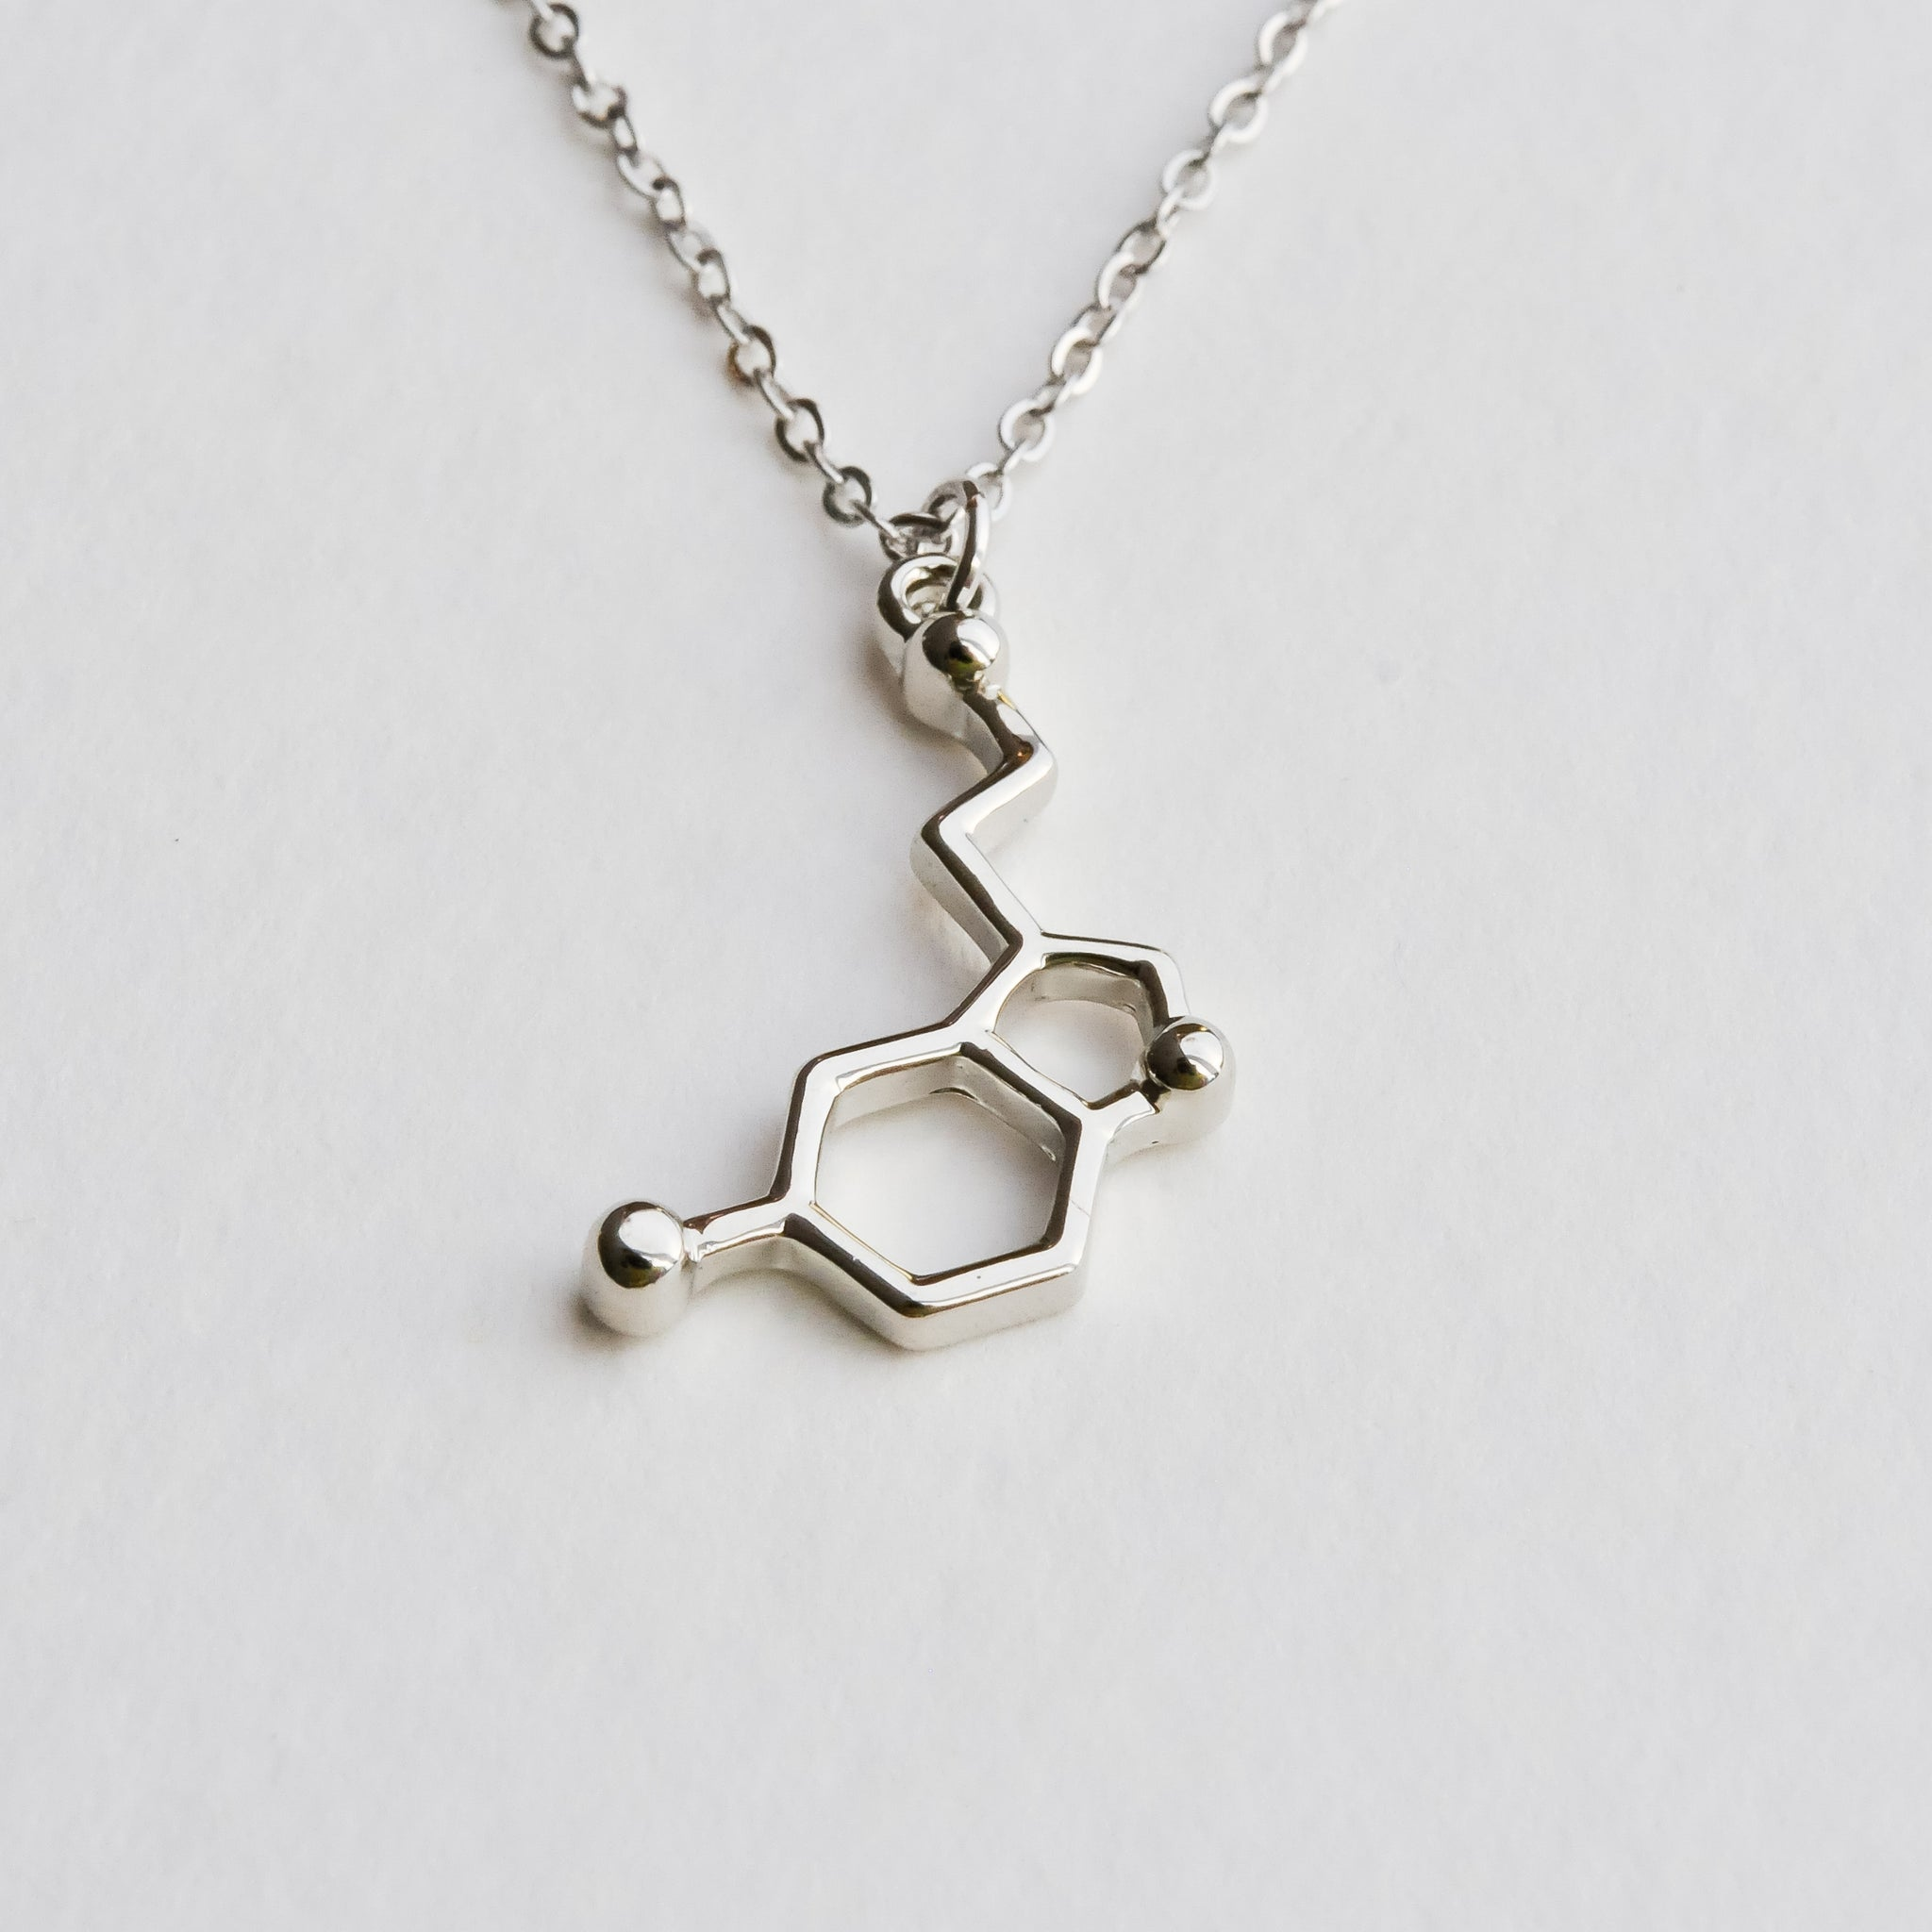 Jewelry for Science!